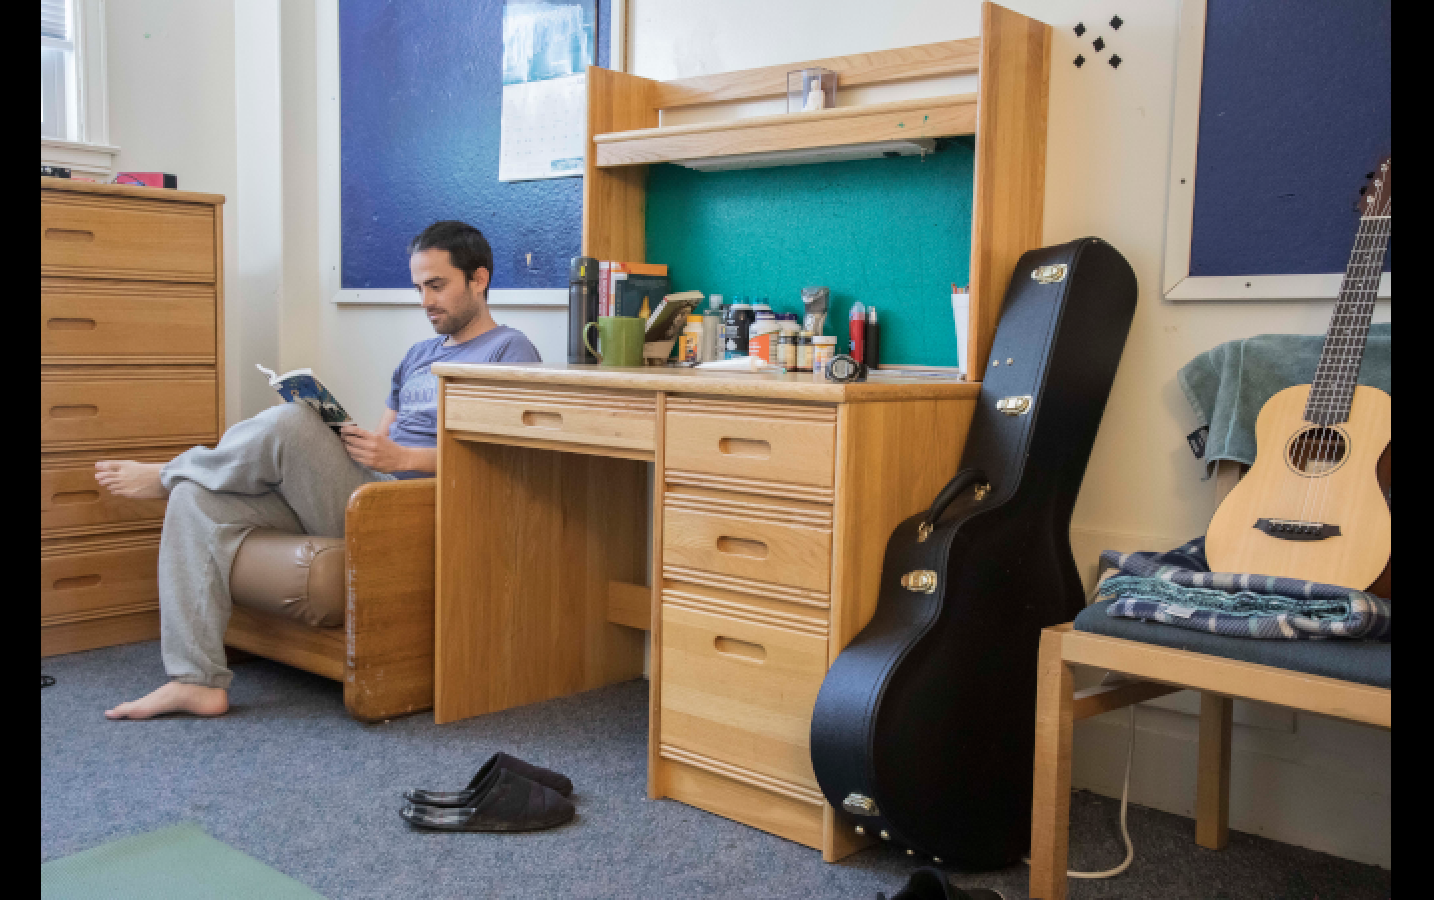 Tomas Fletcher, one of the new RAs for the Men's Dorm at Sudhana, takes a break from his RA training to spend some time lounging in his room.